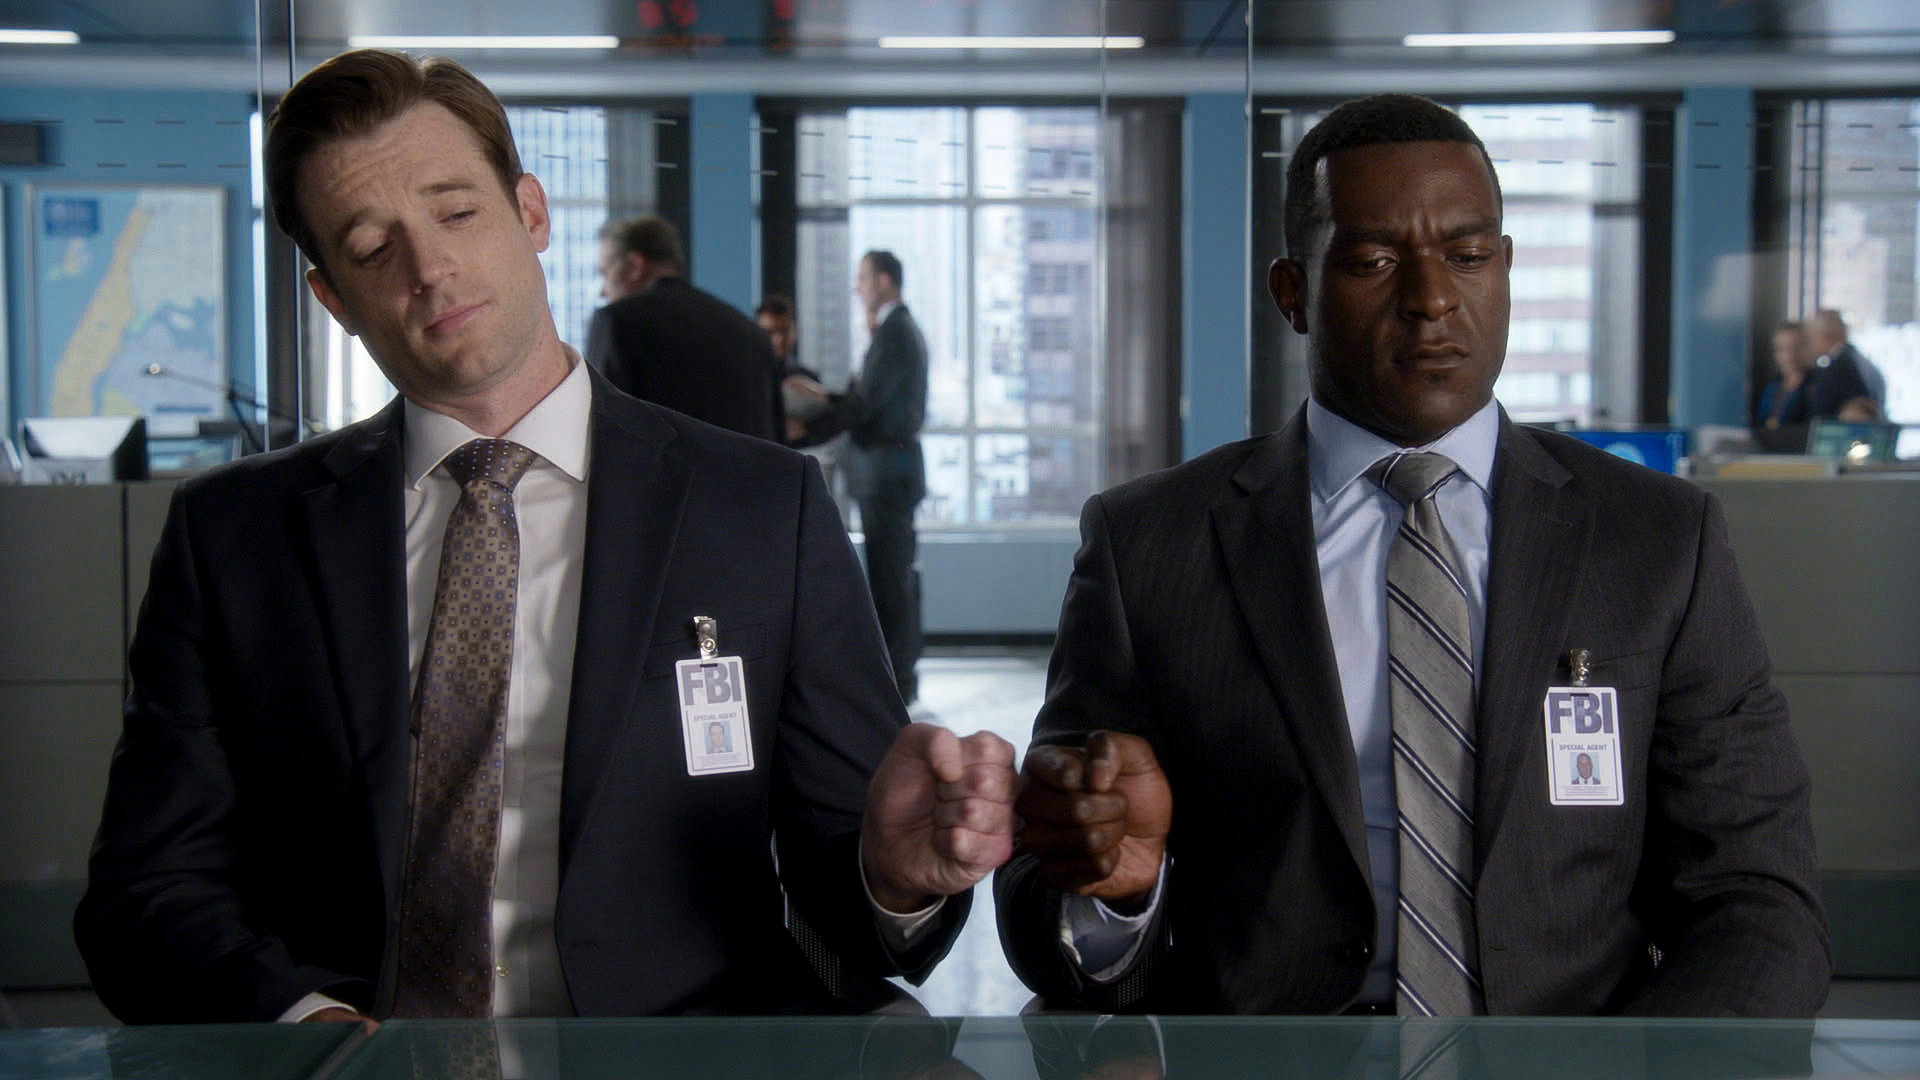 Tom Degnan as Agent Ike and Michael James Shaw as Agent Mike